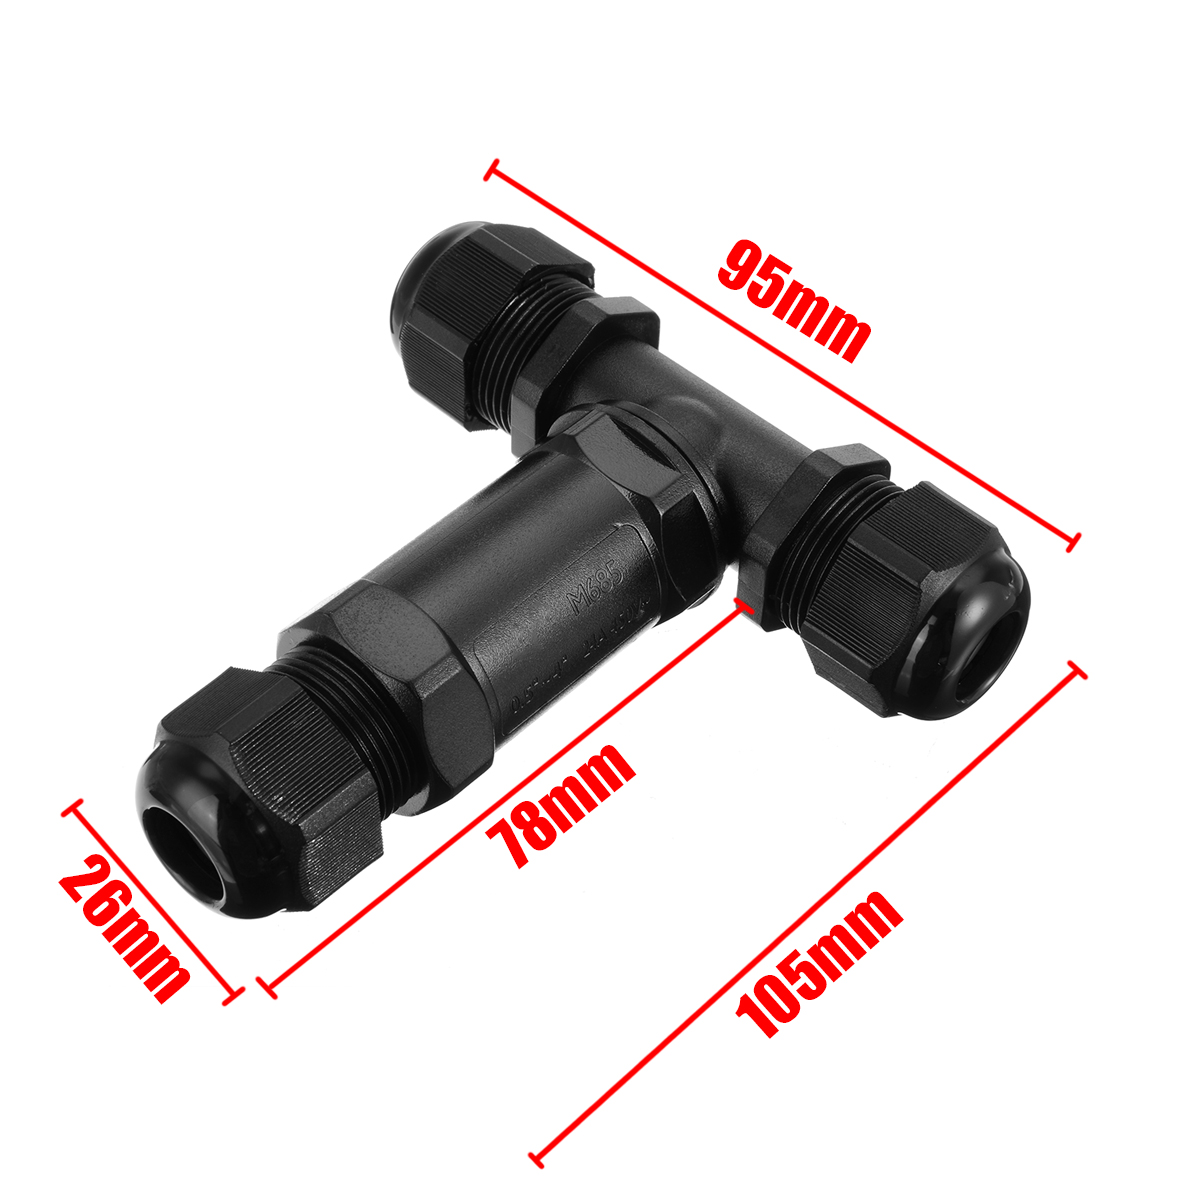 T Shape Cable Sleeve IP68 Waterproof Cable Connector 3 Way Splitter Electrical Outdoor Power LED Lighting